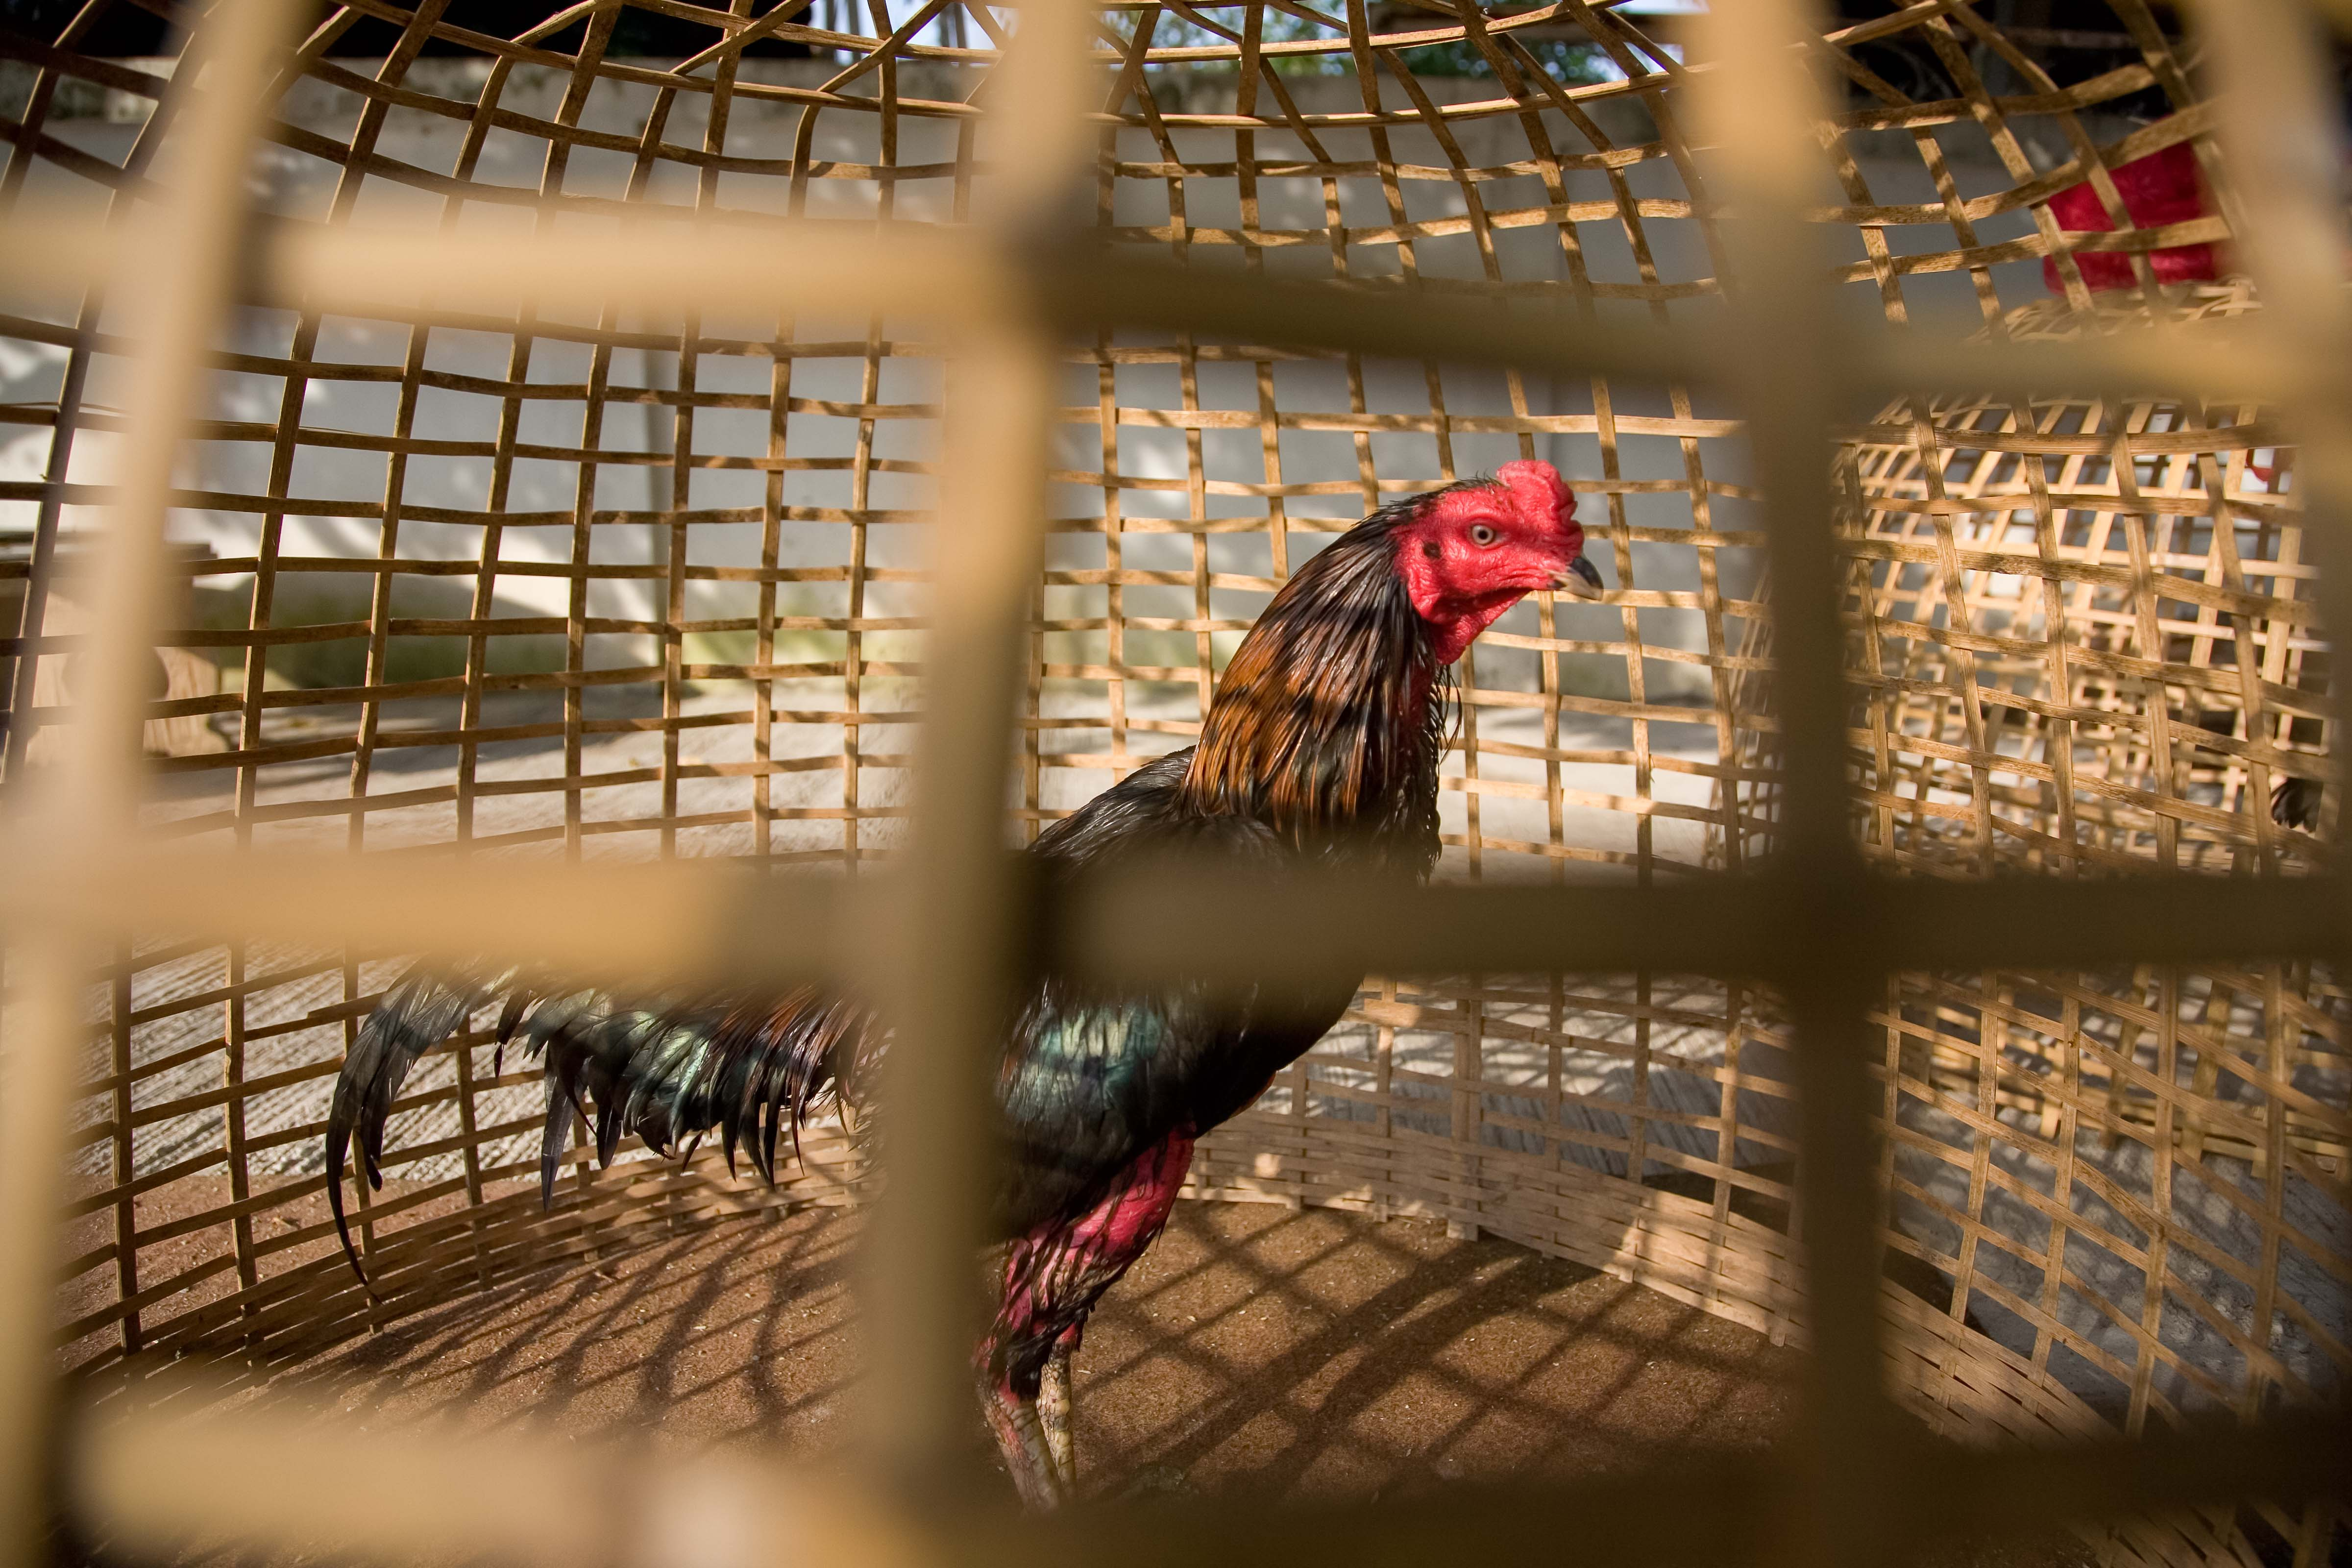 Thailand, Lamphun Province, Caged Rooster, 2008, IMG_4008